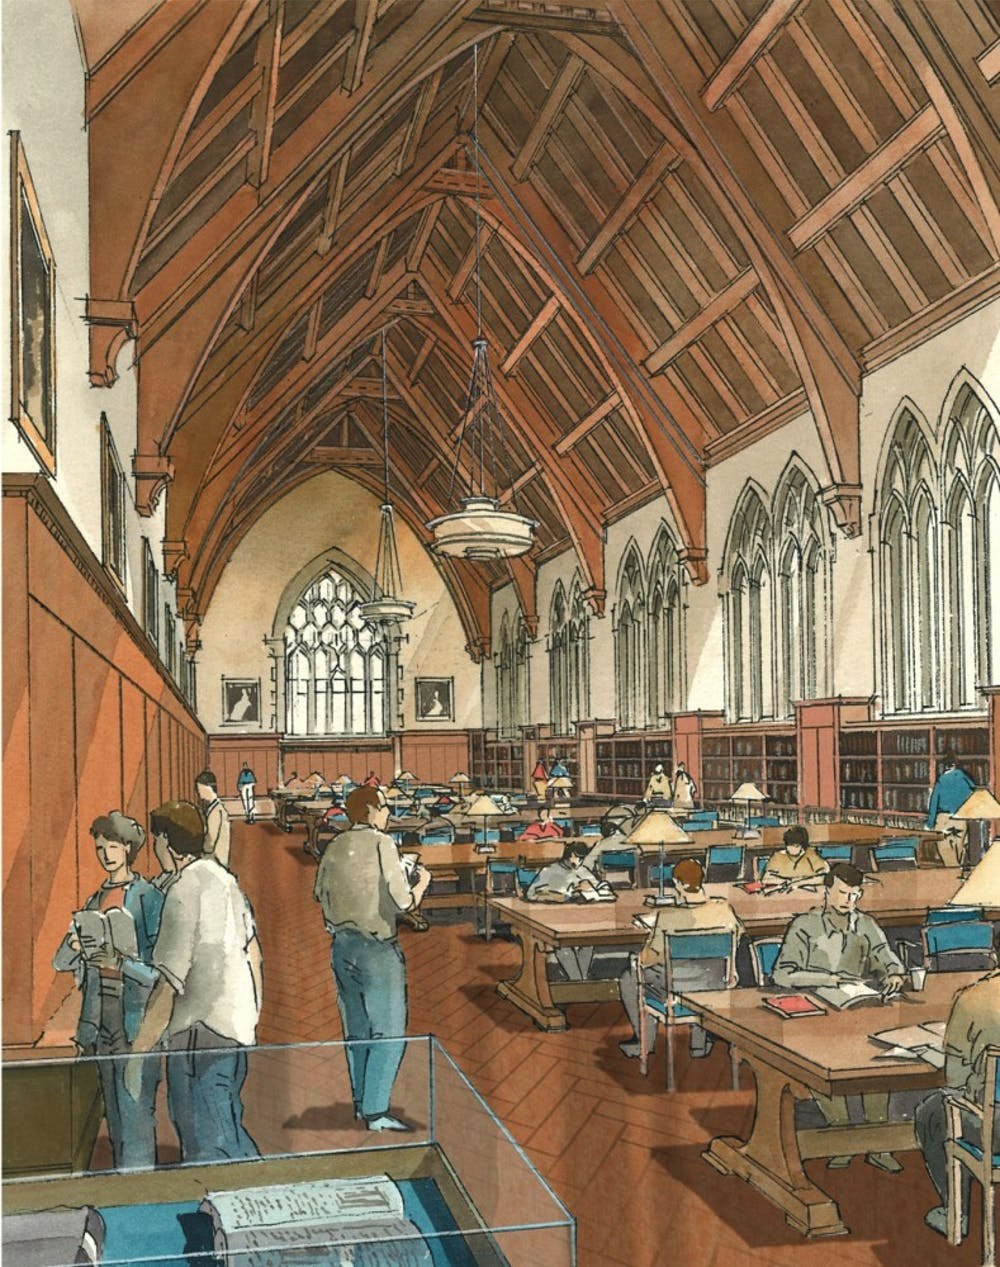 This artist's rendering shows plans for a renovated reading room in the David M. Rubenstein Rare Book and Manuscript Library. Construction is expected to begin December 2012 and finish in 2015.